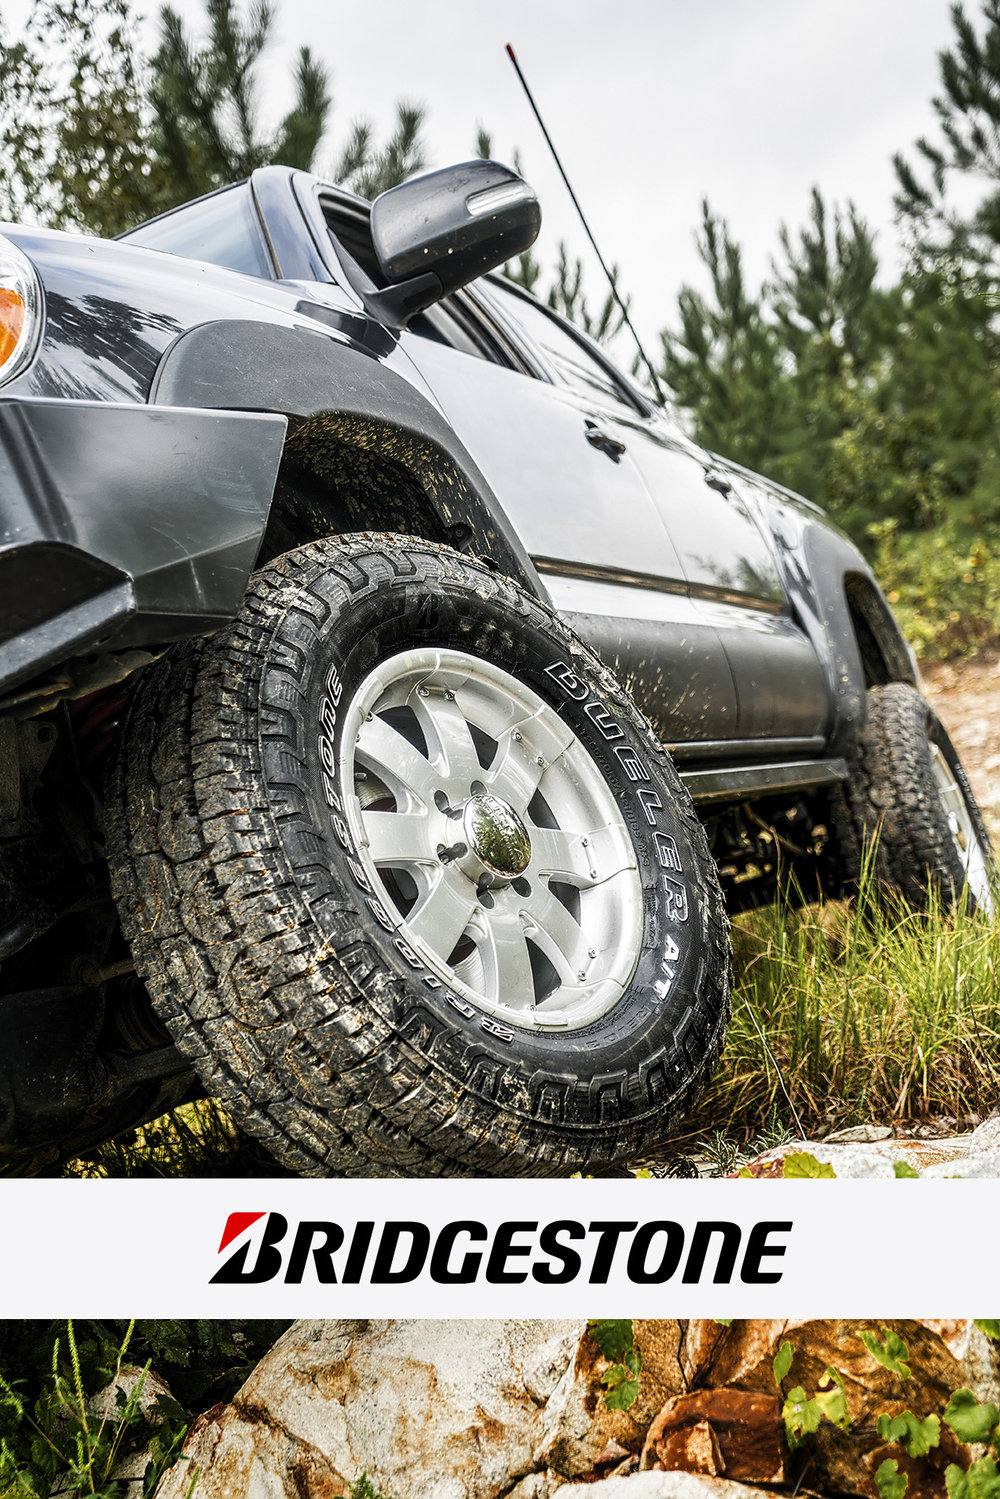 Bridgestone-155_WebResolution_FullSize copy.jpg